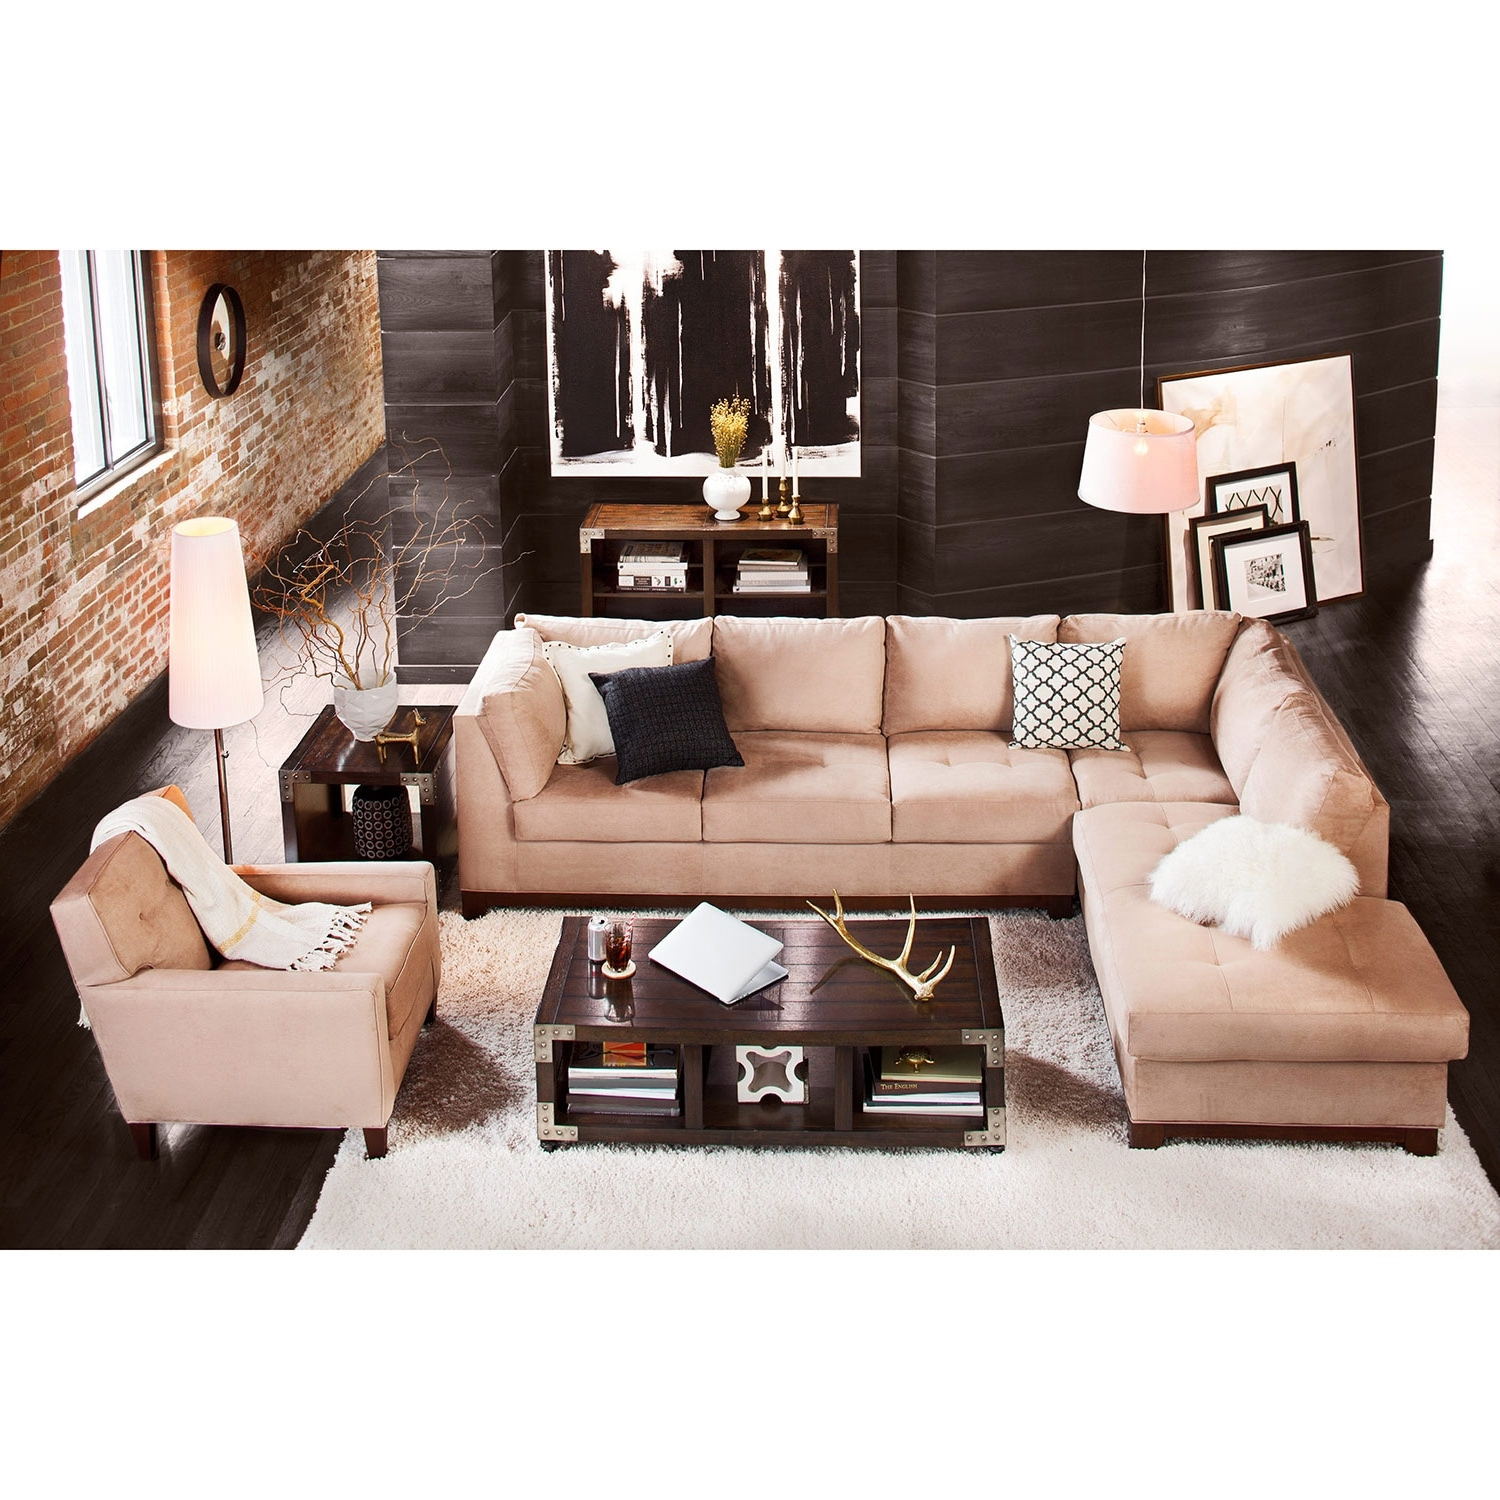 Newest Arrowmask 2 Piece Sectionals With Sleeper & Left Facing Chaise Pertaining To Soho 2 Piece Sectional With Chaise (View 16 of 20)